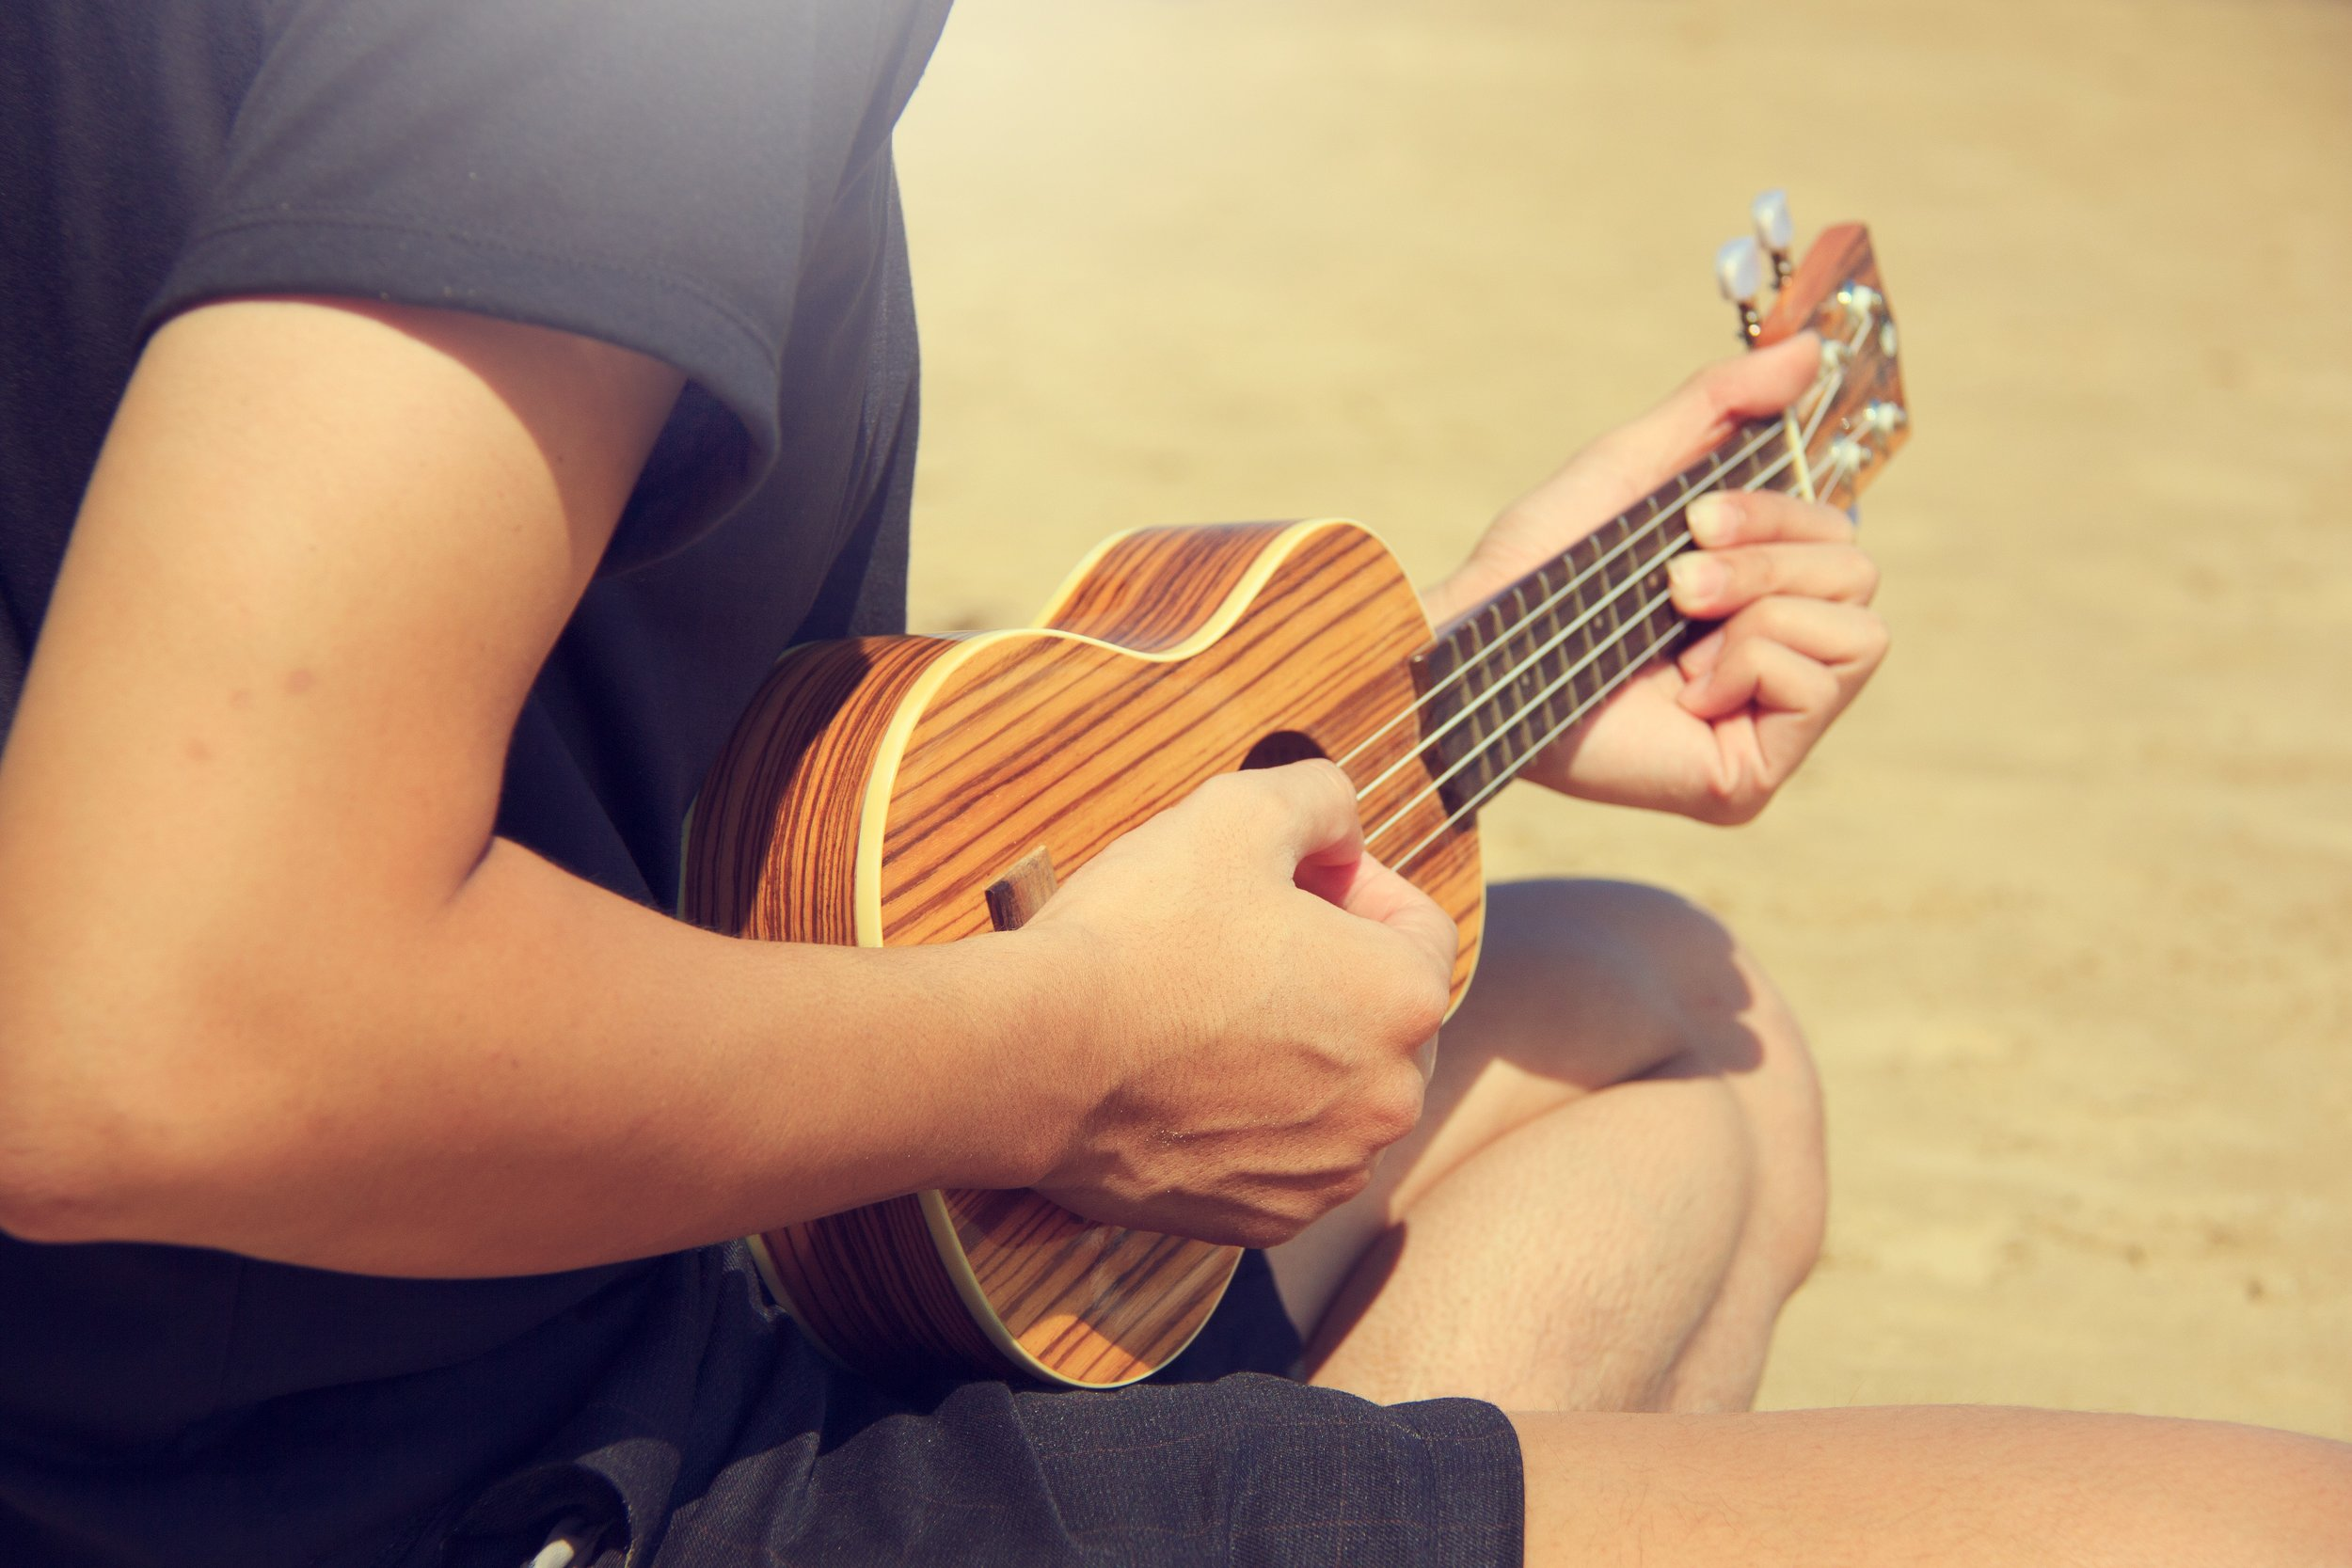 When the tension is right, a ukulele has such a happy sound.